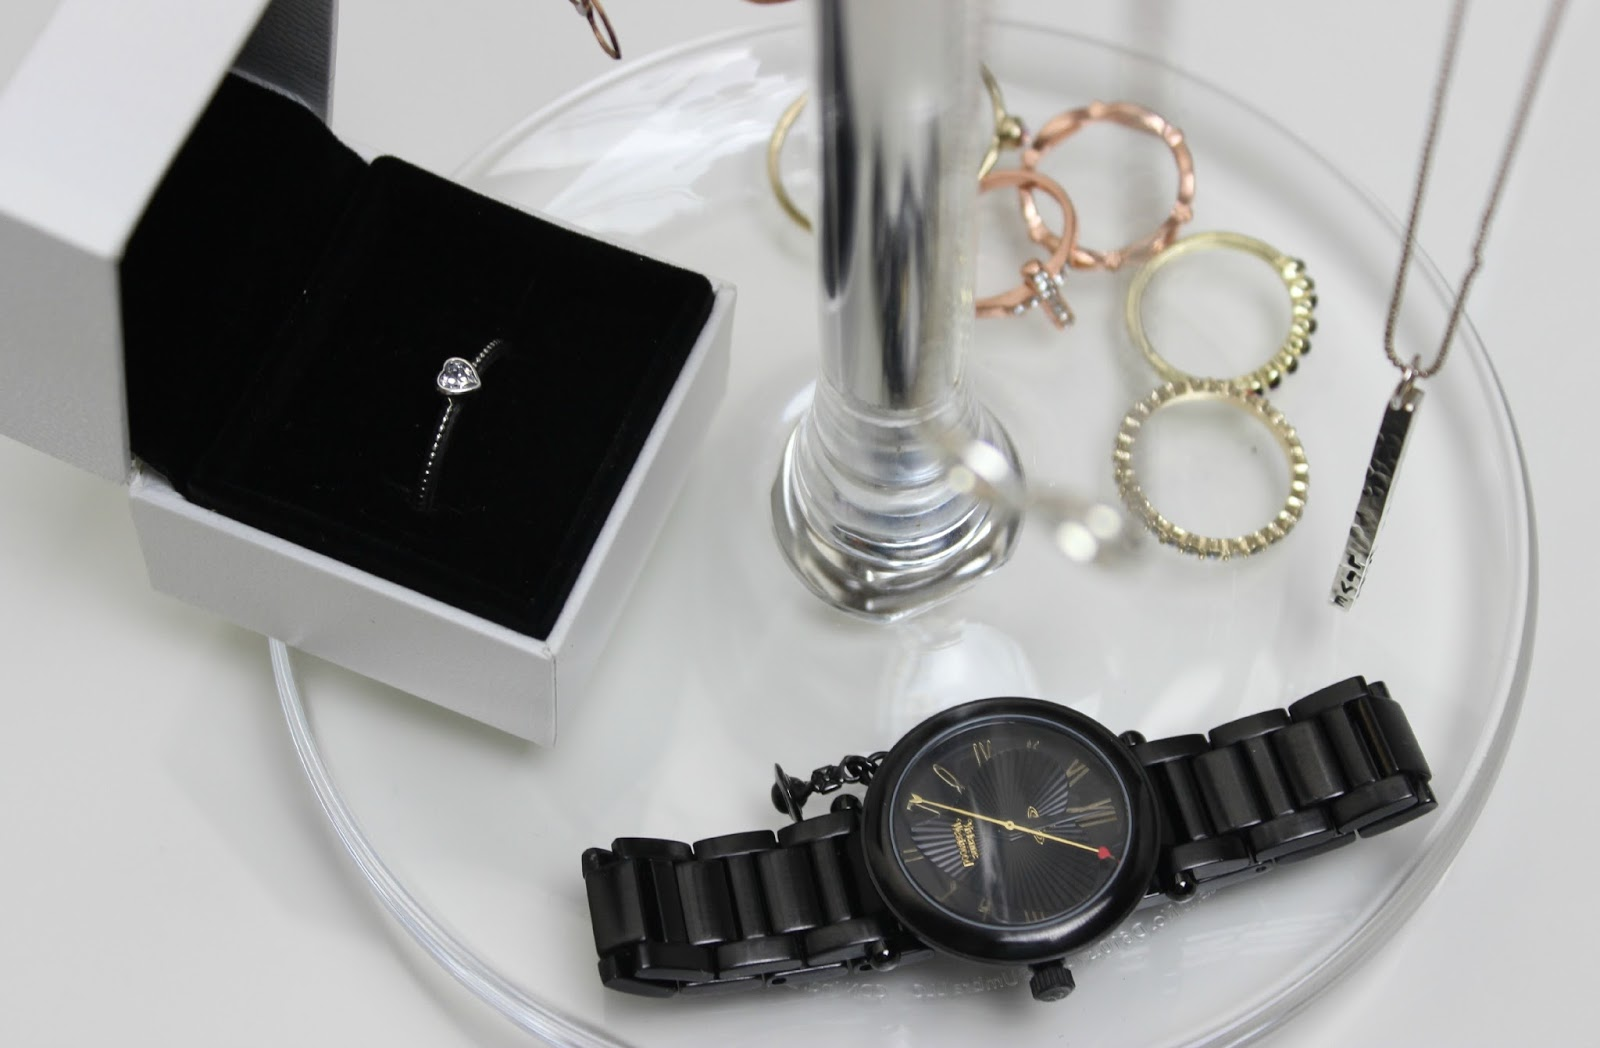 A picture of a Pandora ring and a Vivienne Westwood Black Orb Watch